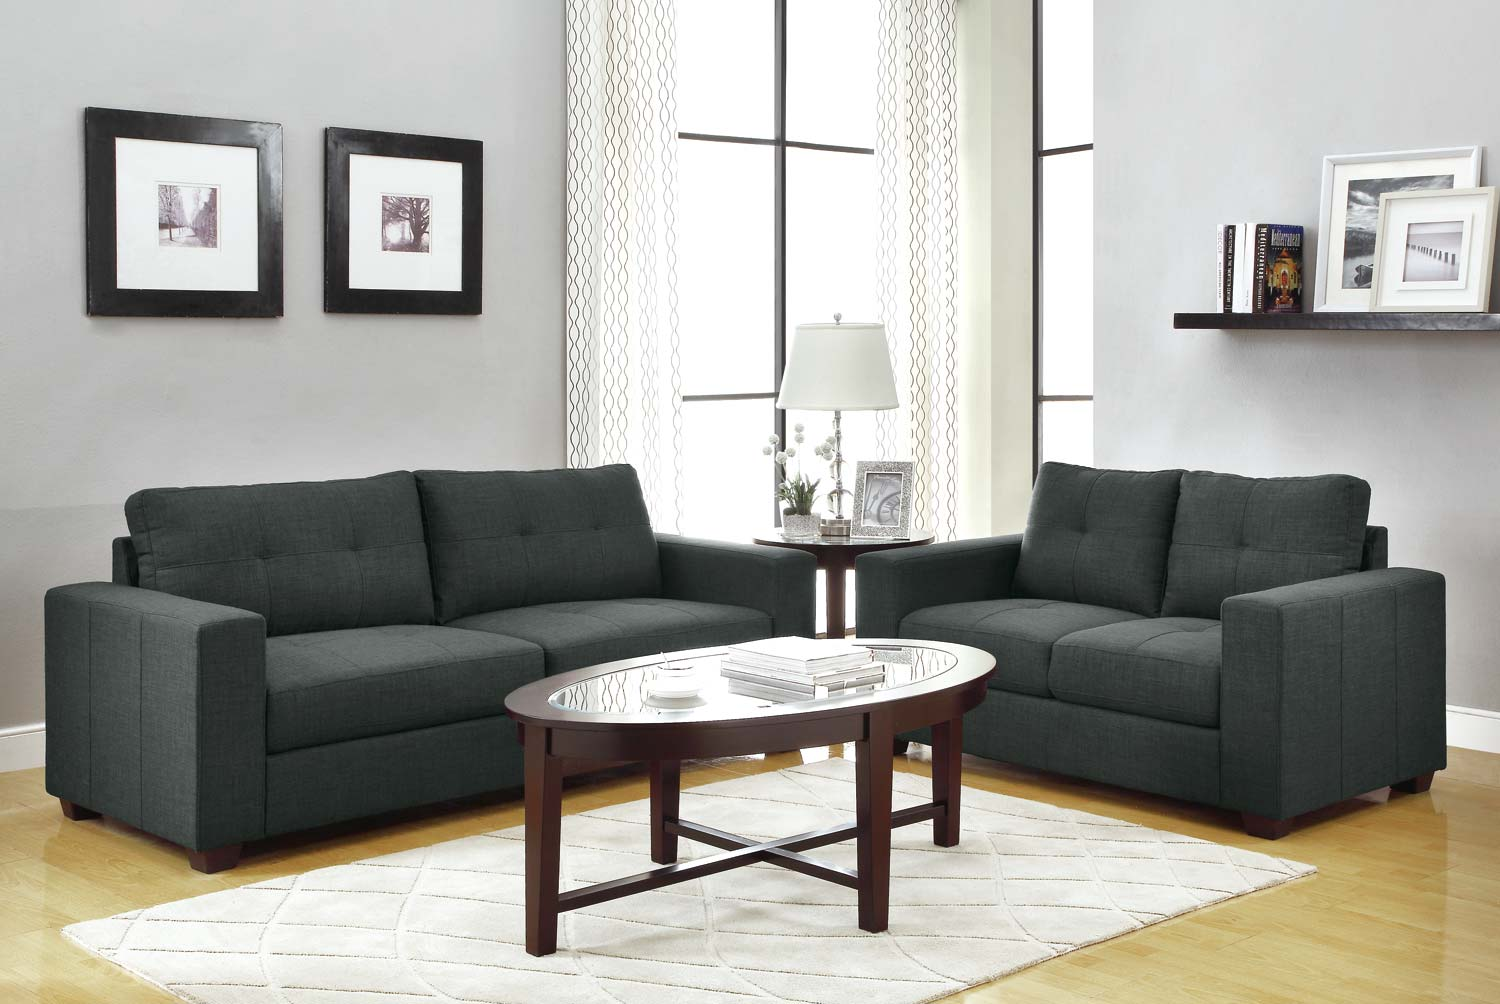 Sofa Sets In Living Room Homelegance Ashmont Sofa Set Dark Grey Linen